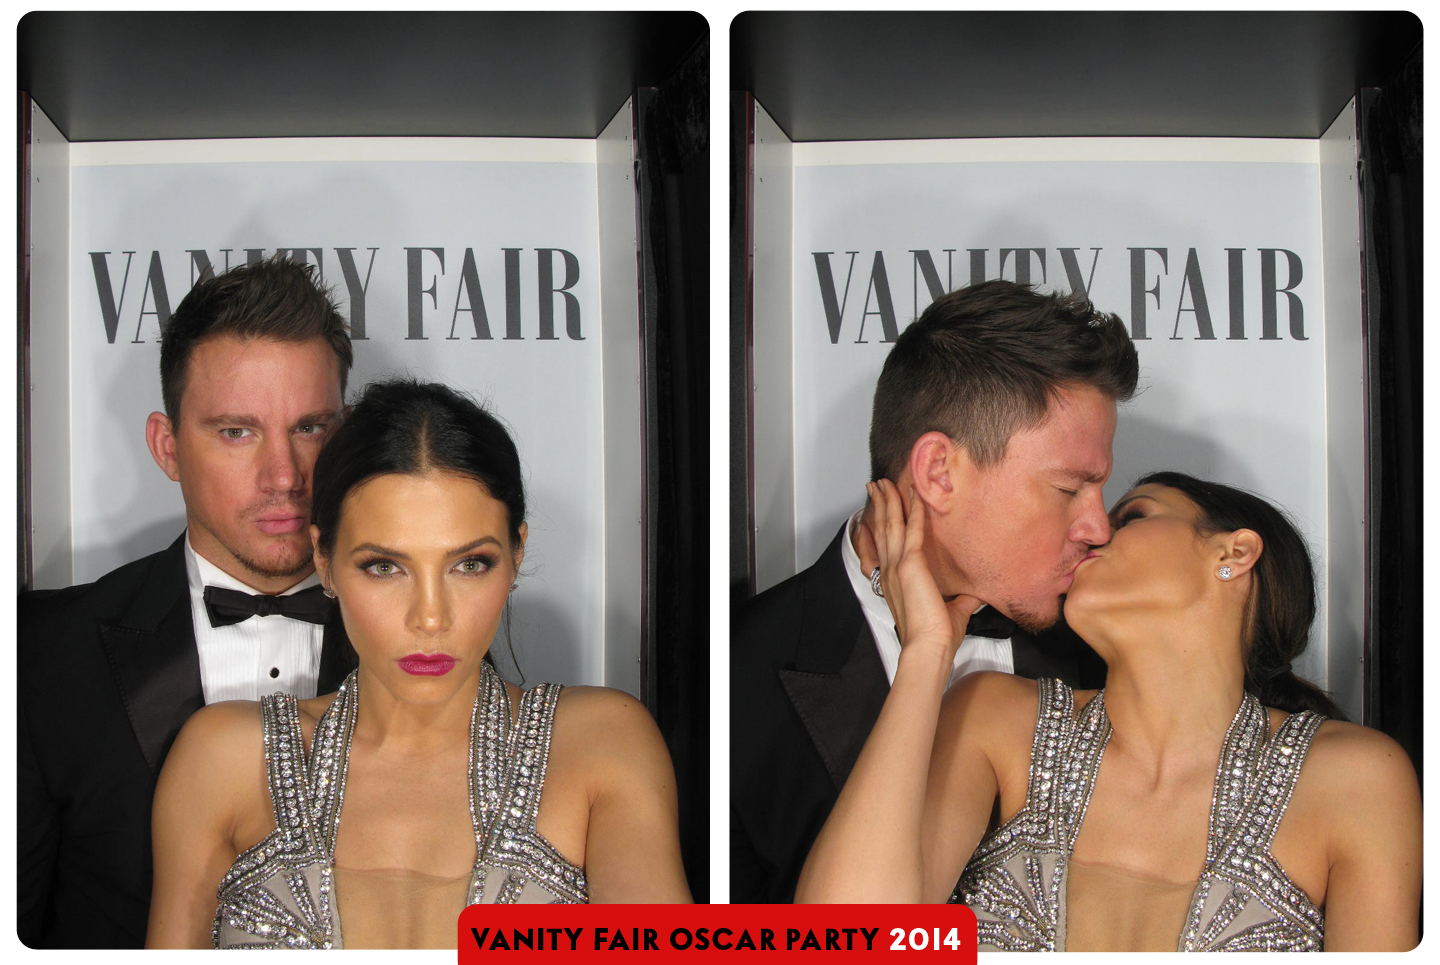 5315491e257313775447defe_ss07-channing-tatum-vanity-fair-photo-booth.png